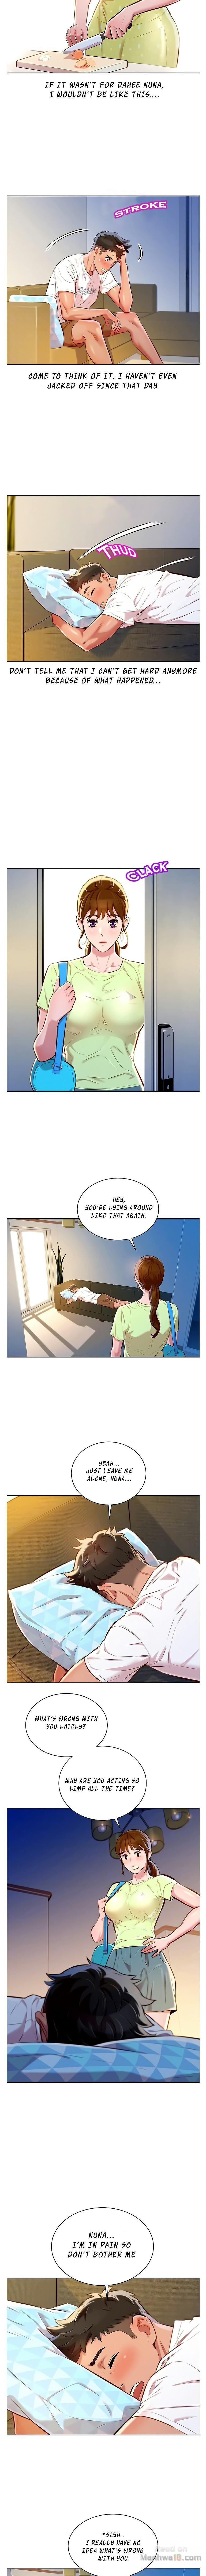 What do you Take me For? Ch.70/? 511